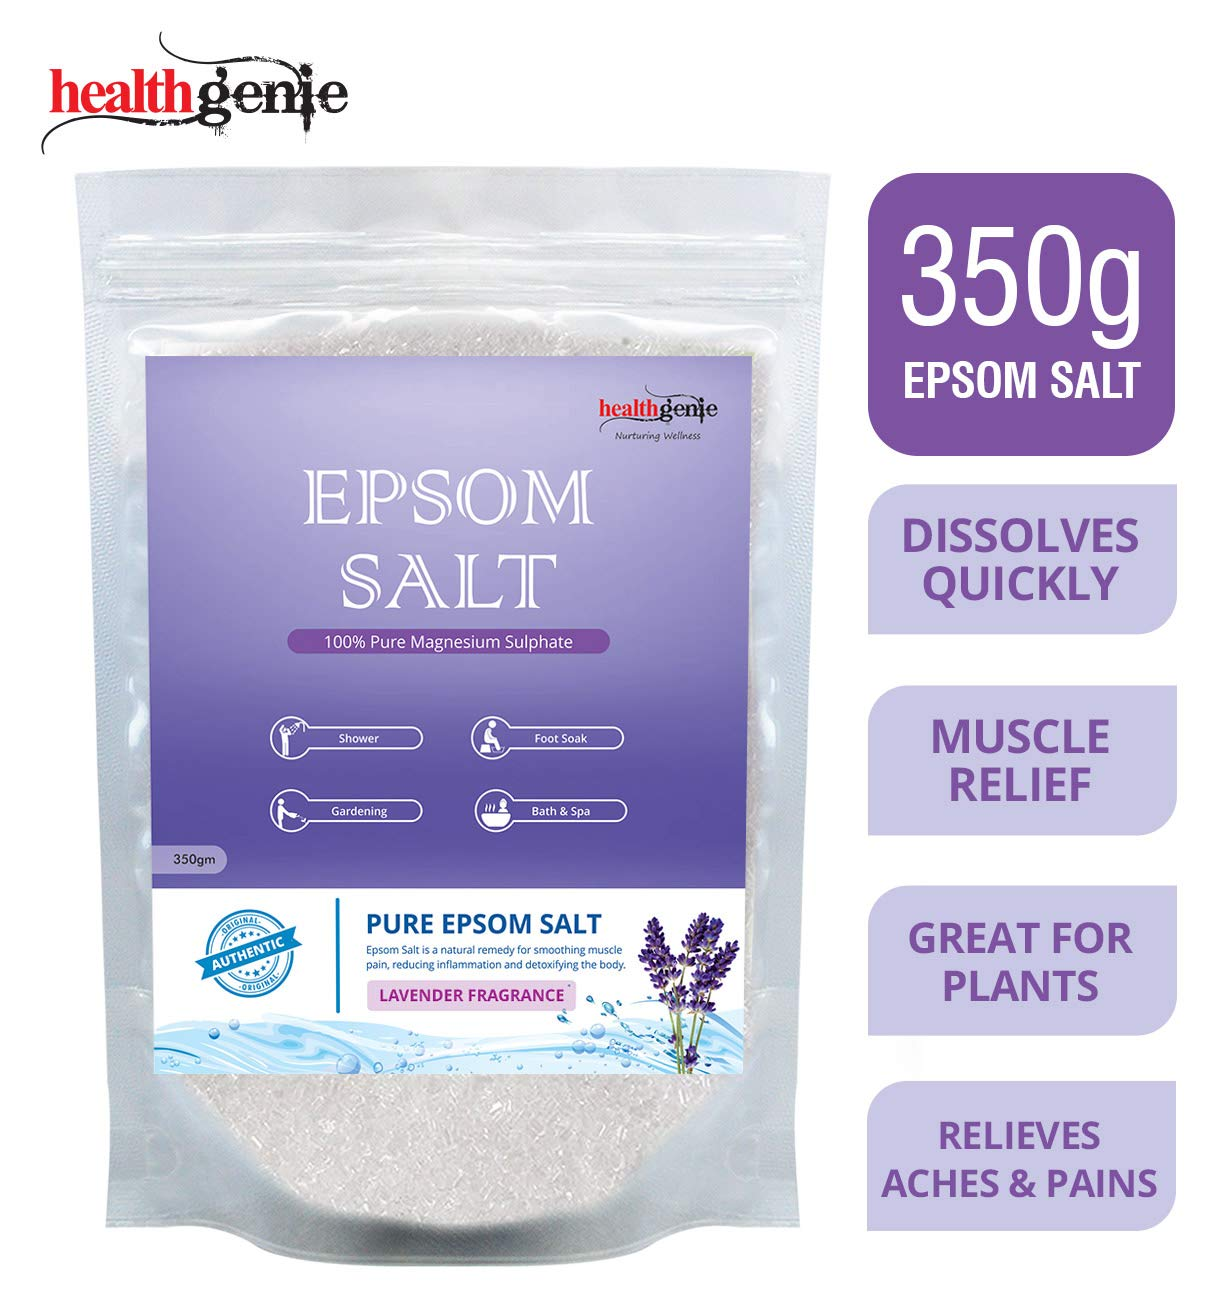 Healthgenie Epsom Salt for Relaxation and Pain Relief with Lavender Fragrance - 350 g